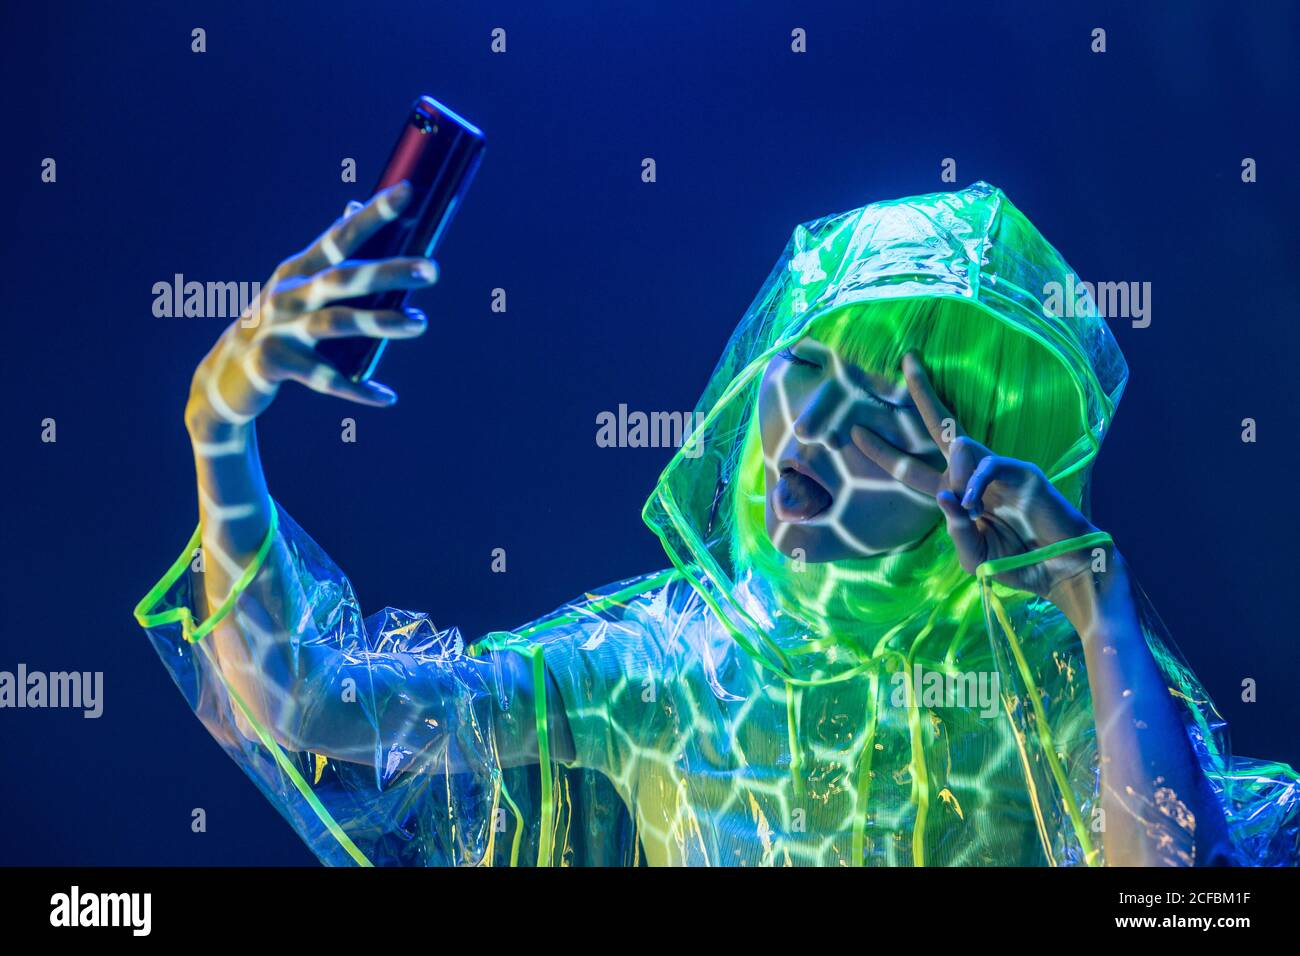 Young Asian woman in futuristic wear and green wig taking selfie on smartphone in fluorescent light Stock Photo